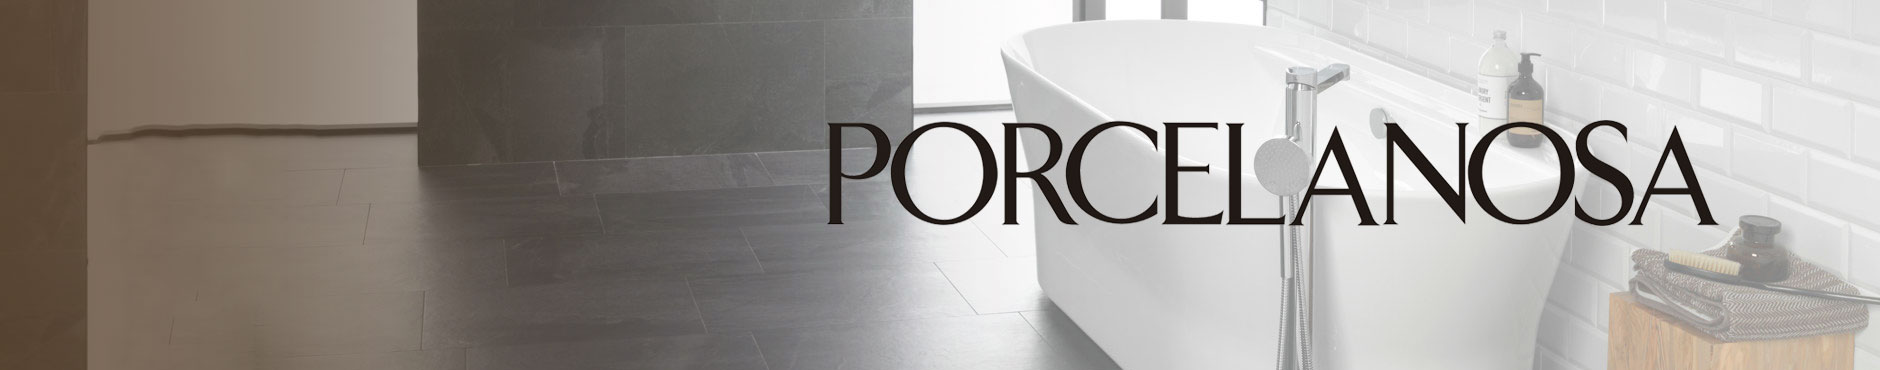 Porcelanosa Sale 18th May - 10th June 2018